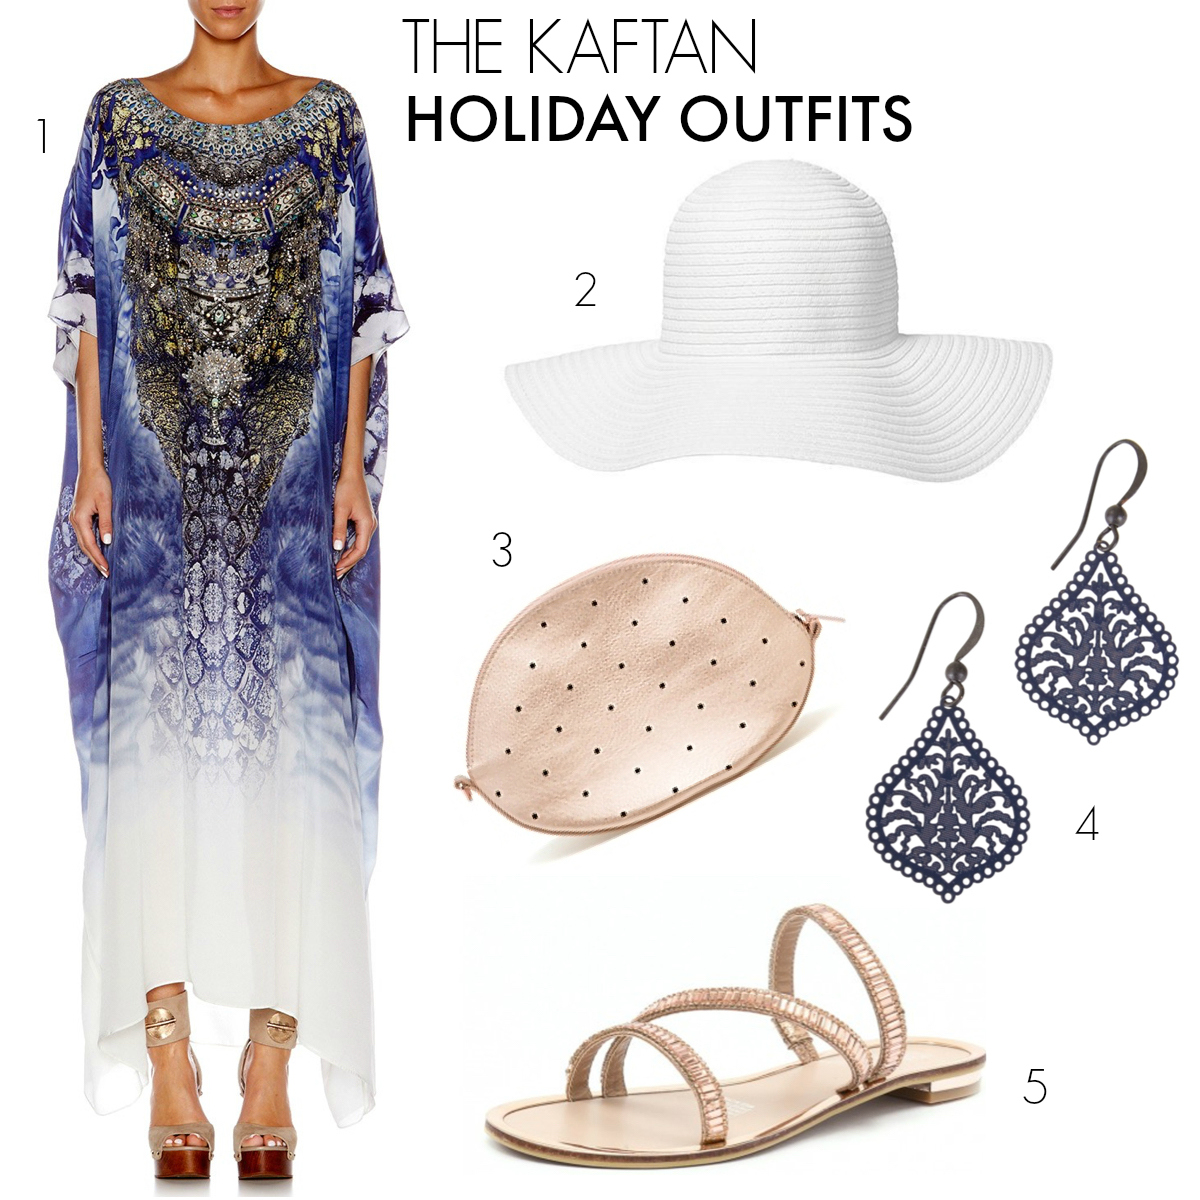 3 party outfits to take you through the holiday season and beyond